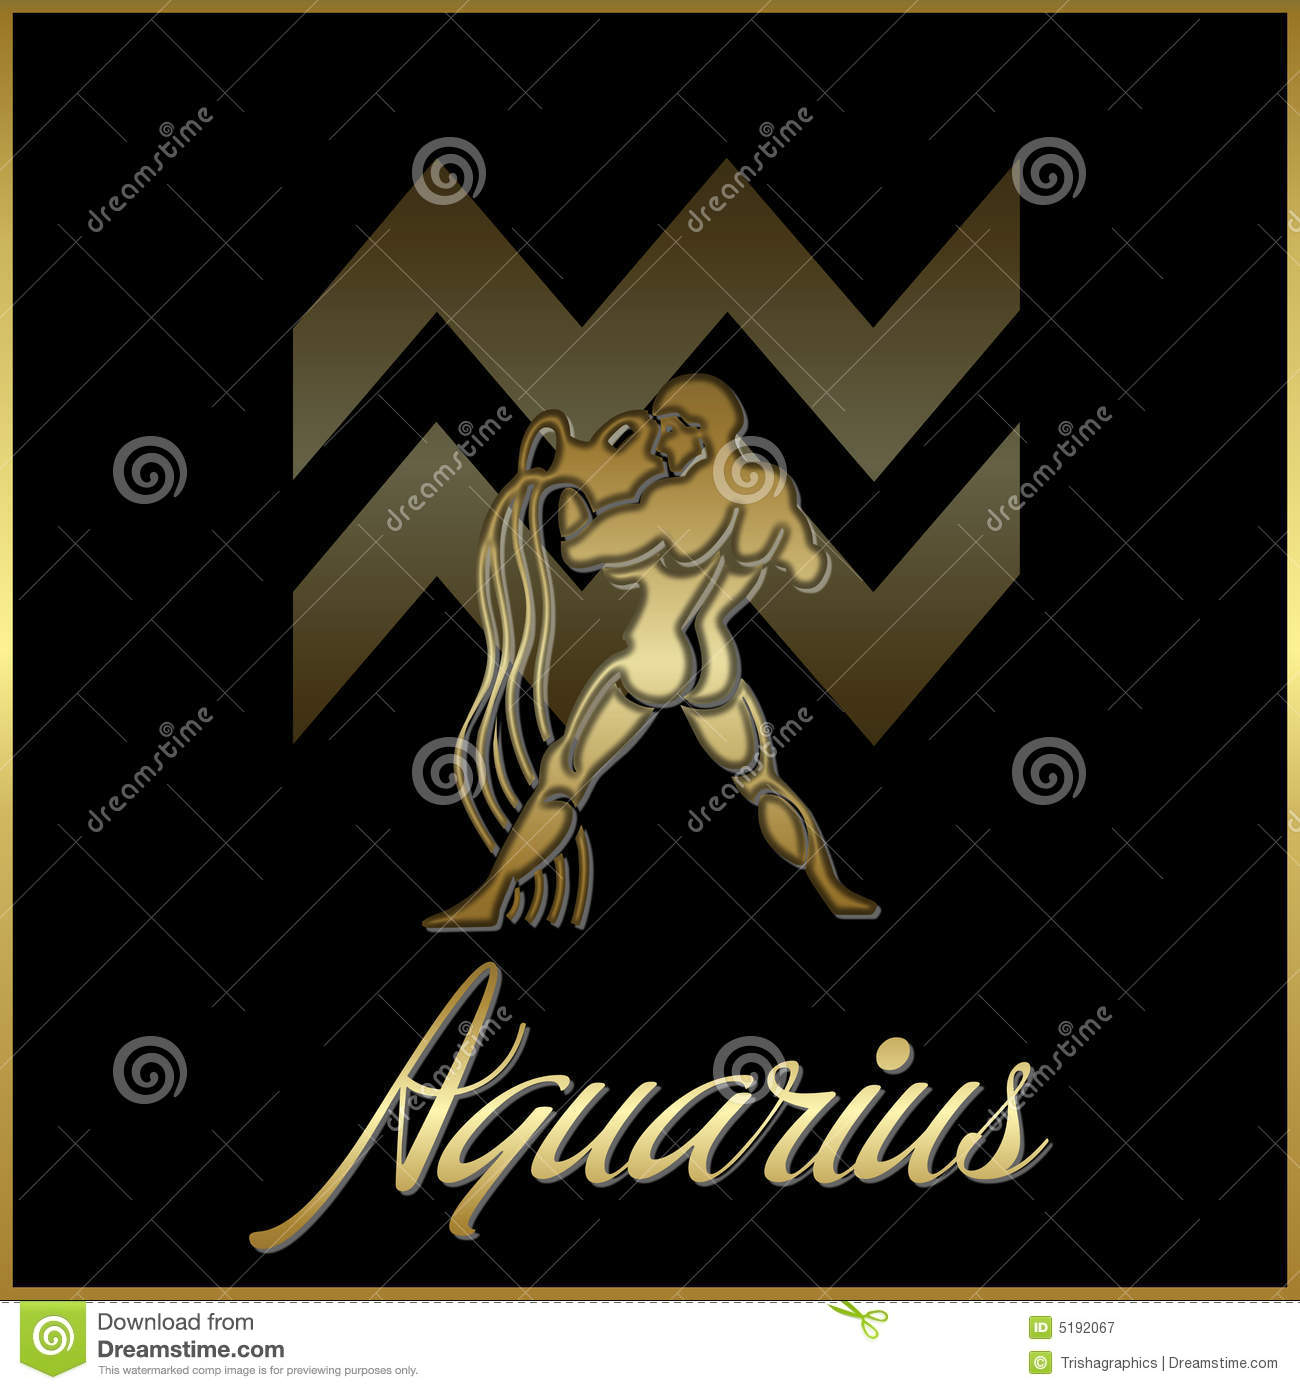 Astrology Sign Aquarius Zodiac Star Sign Royalty Free Stock Photography